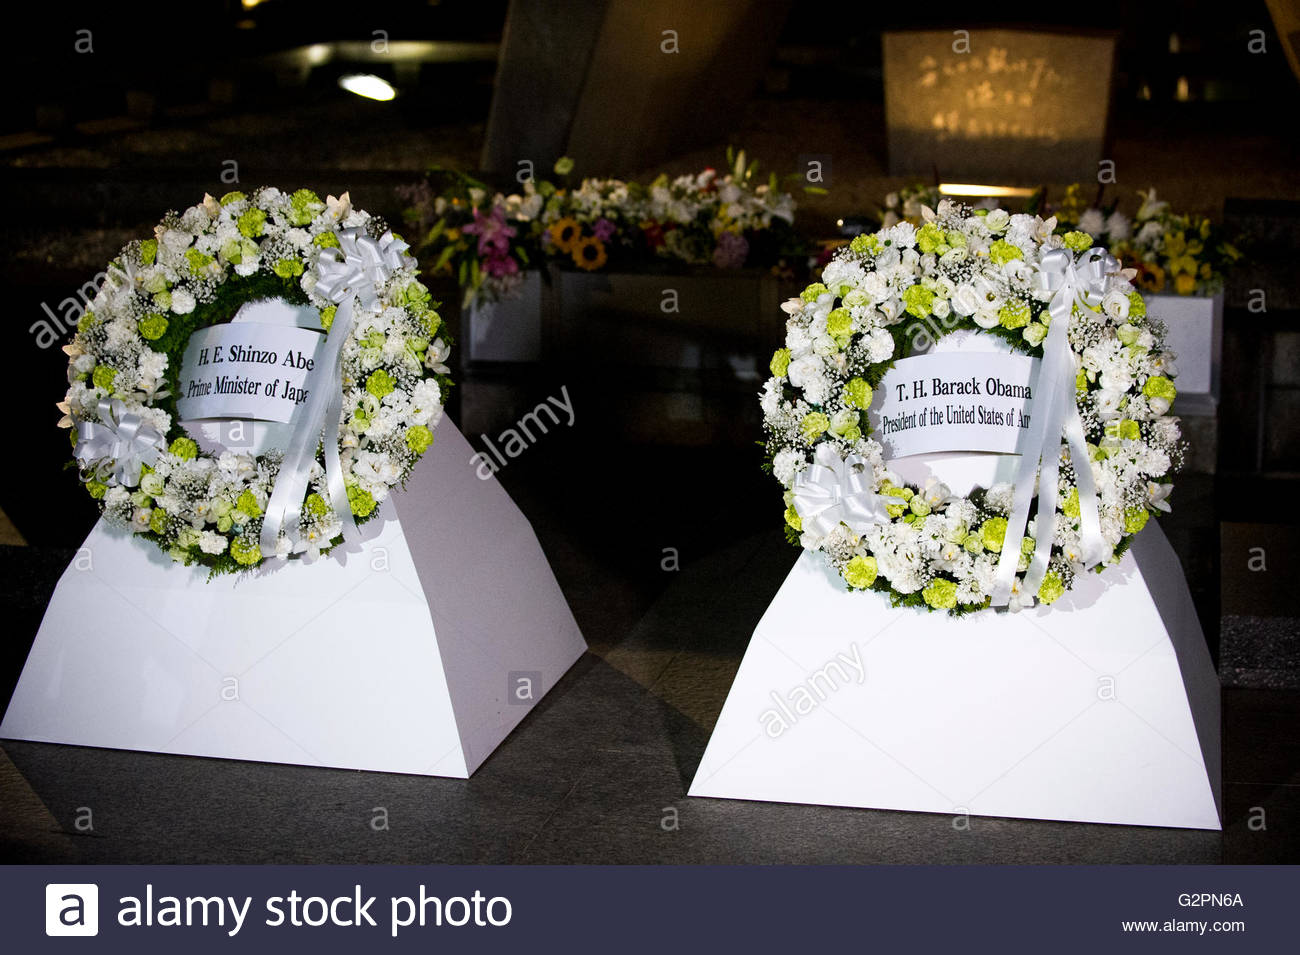 The wreaths laid by US President Barack Obama and Japanese Prime Minister Shinzo Abe during President Obama's - Stock Image